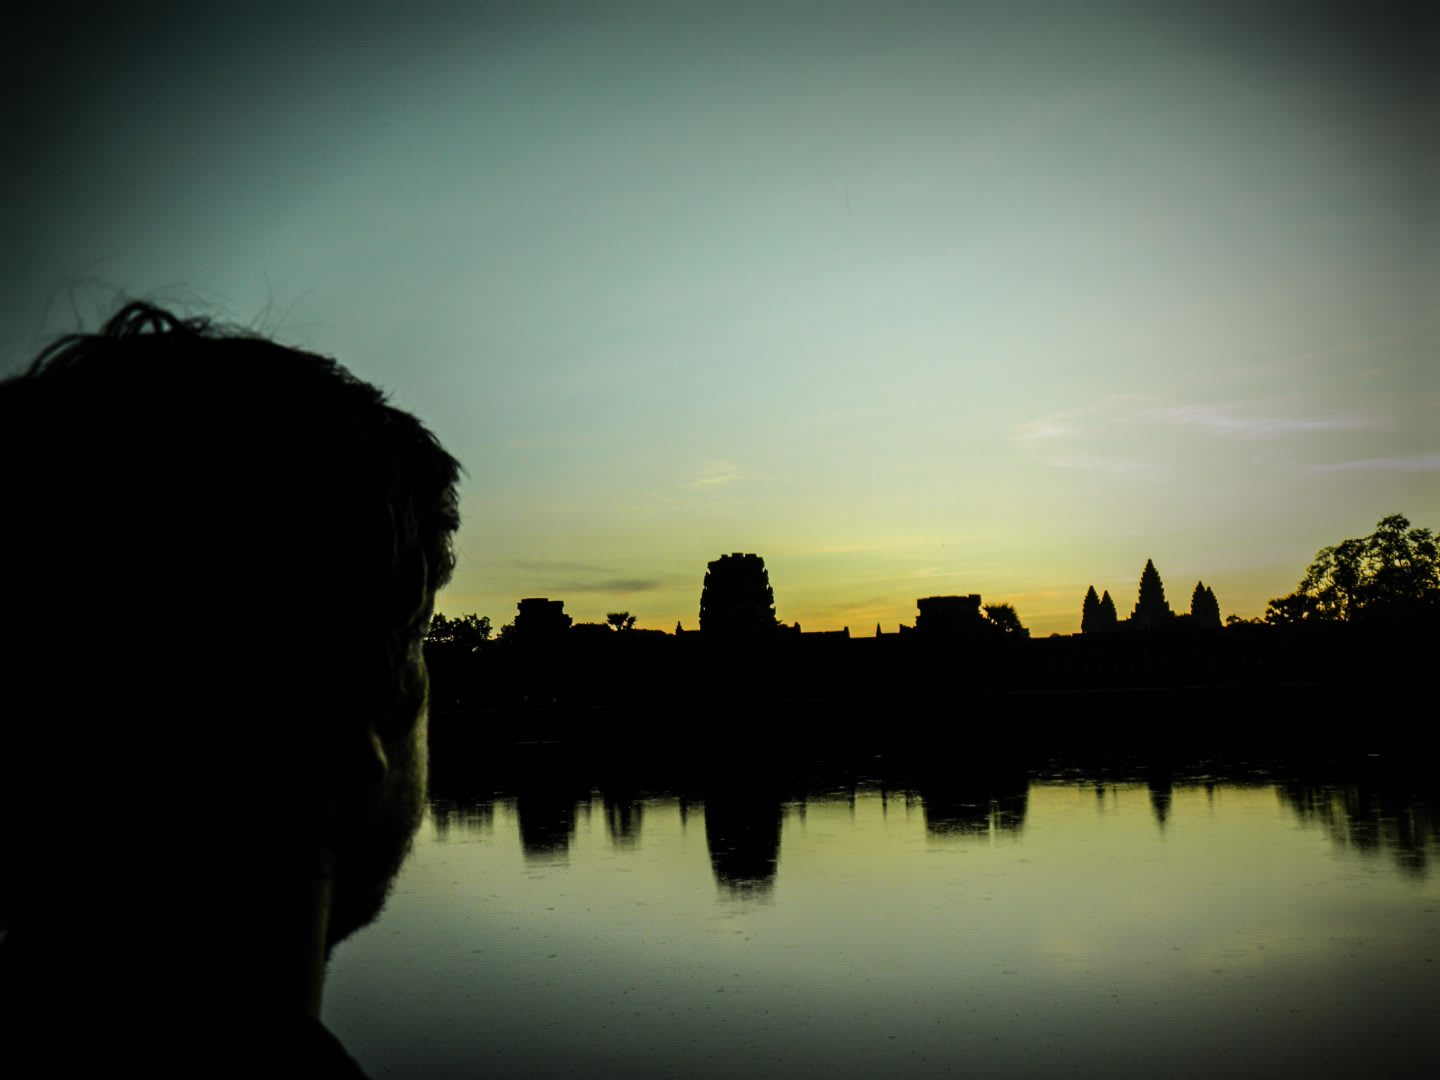 Guy watching the sunset in Angkor Wat